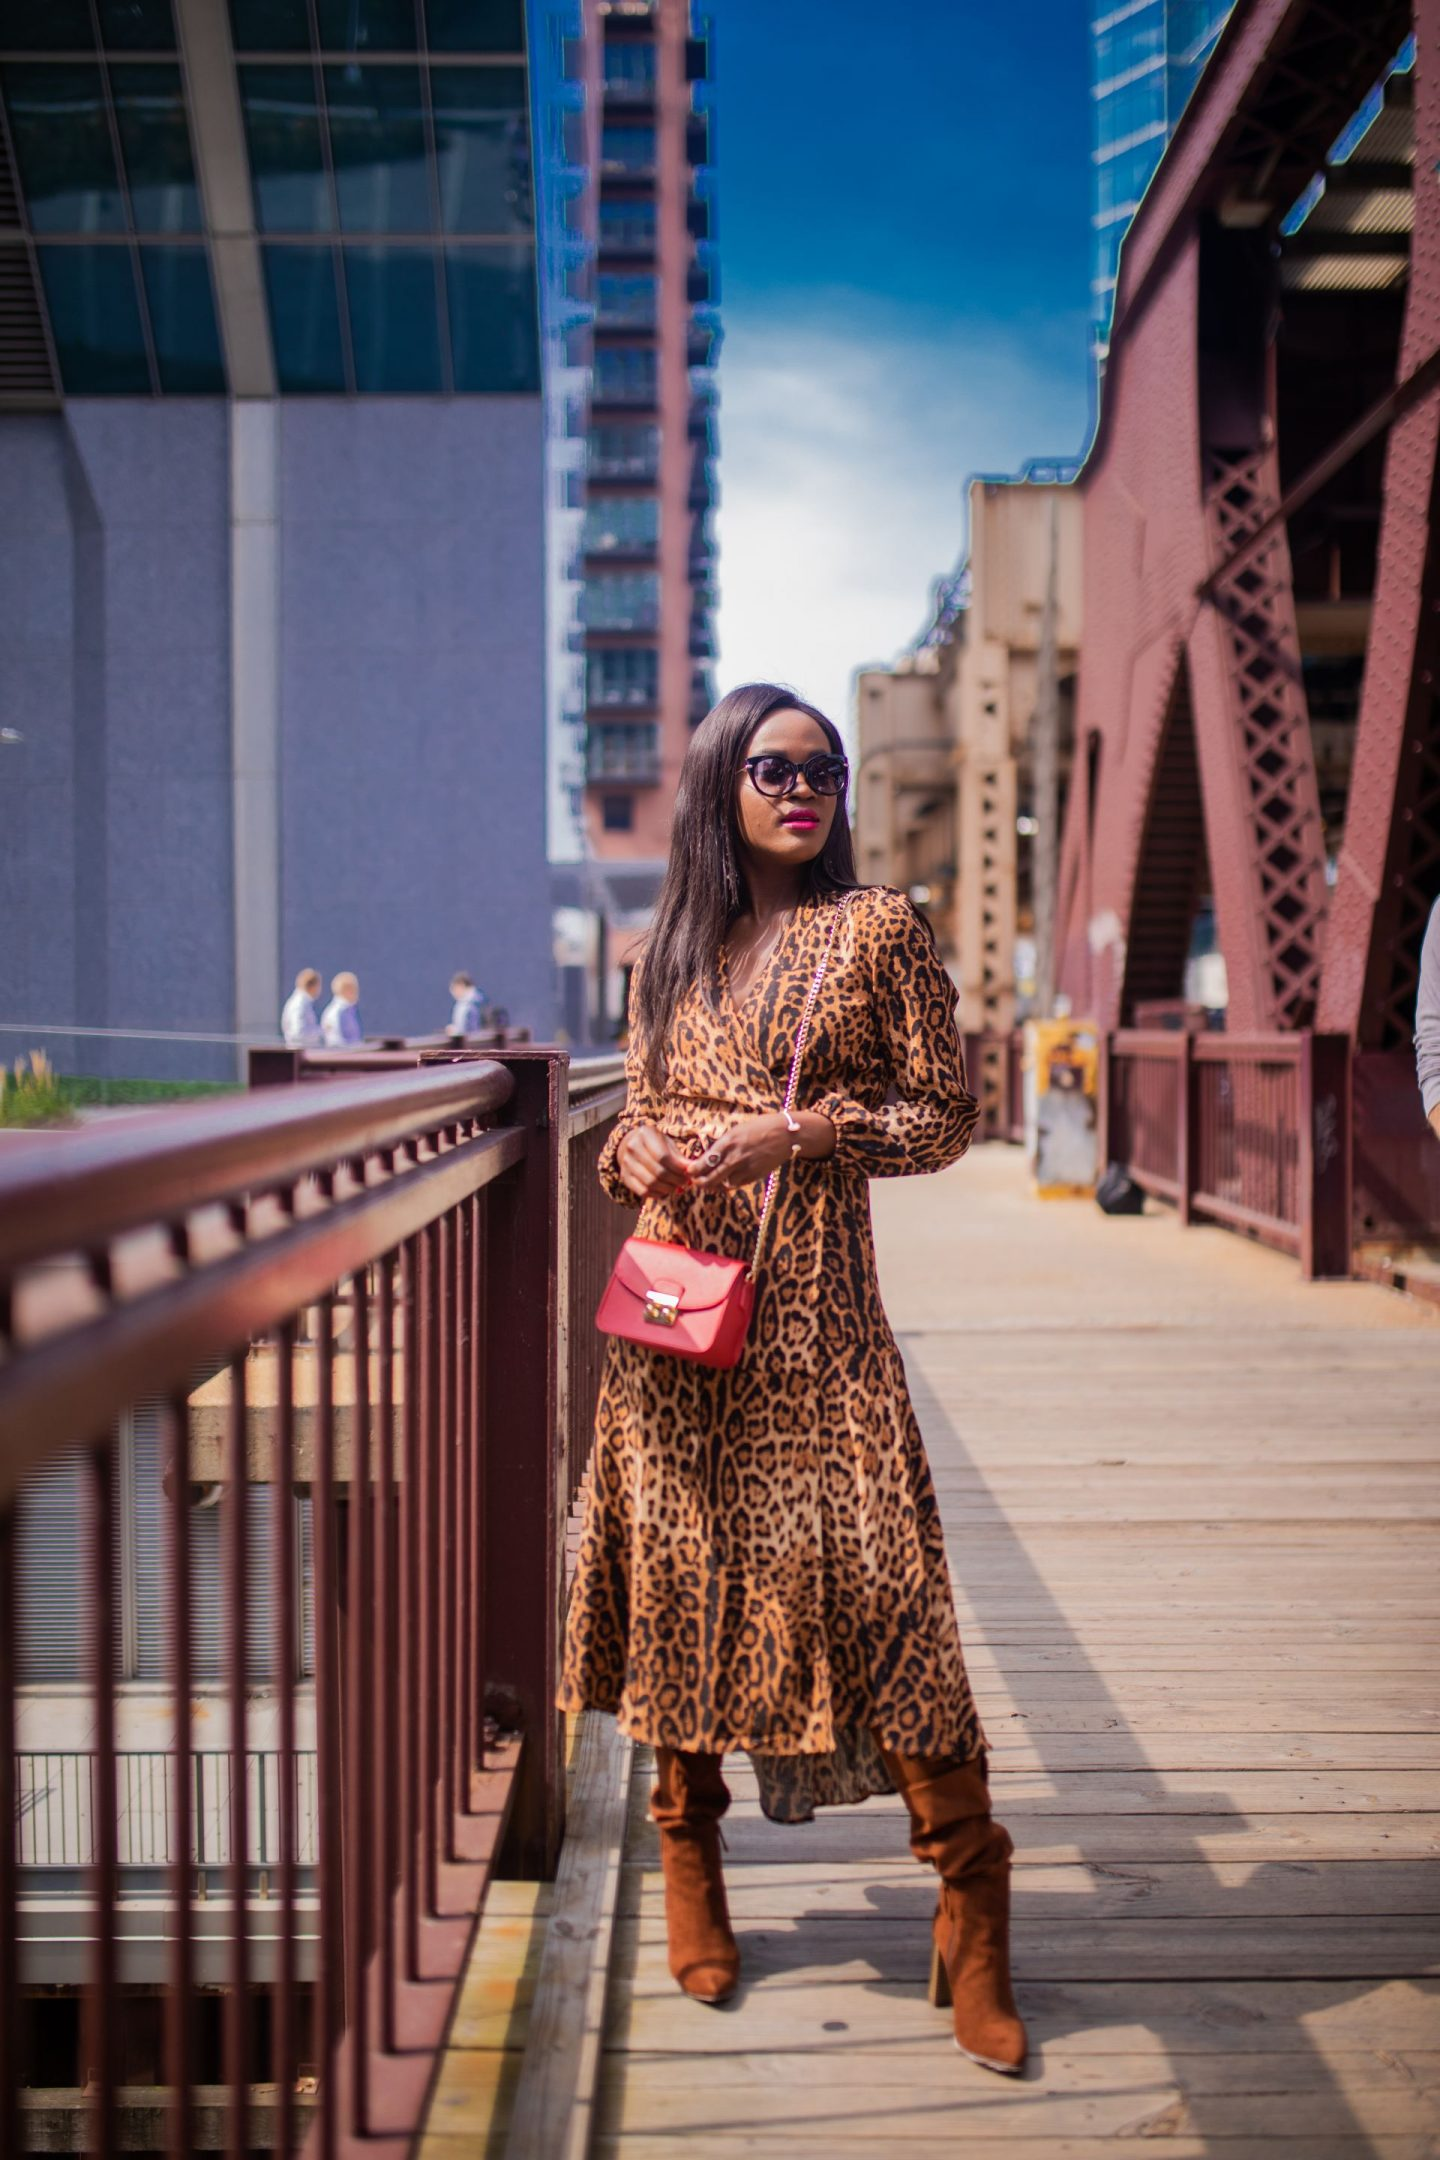 Cranberry Tantrums, How to make a statement in leopard